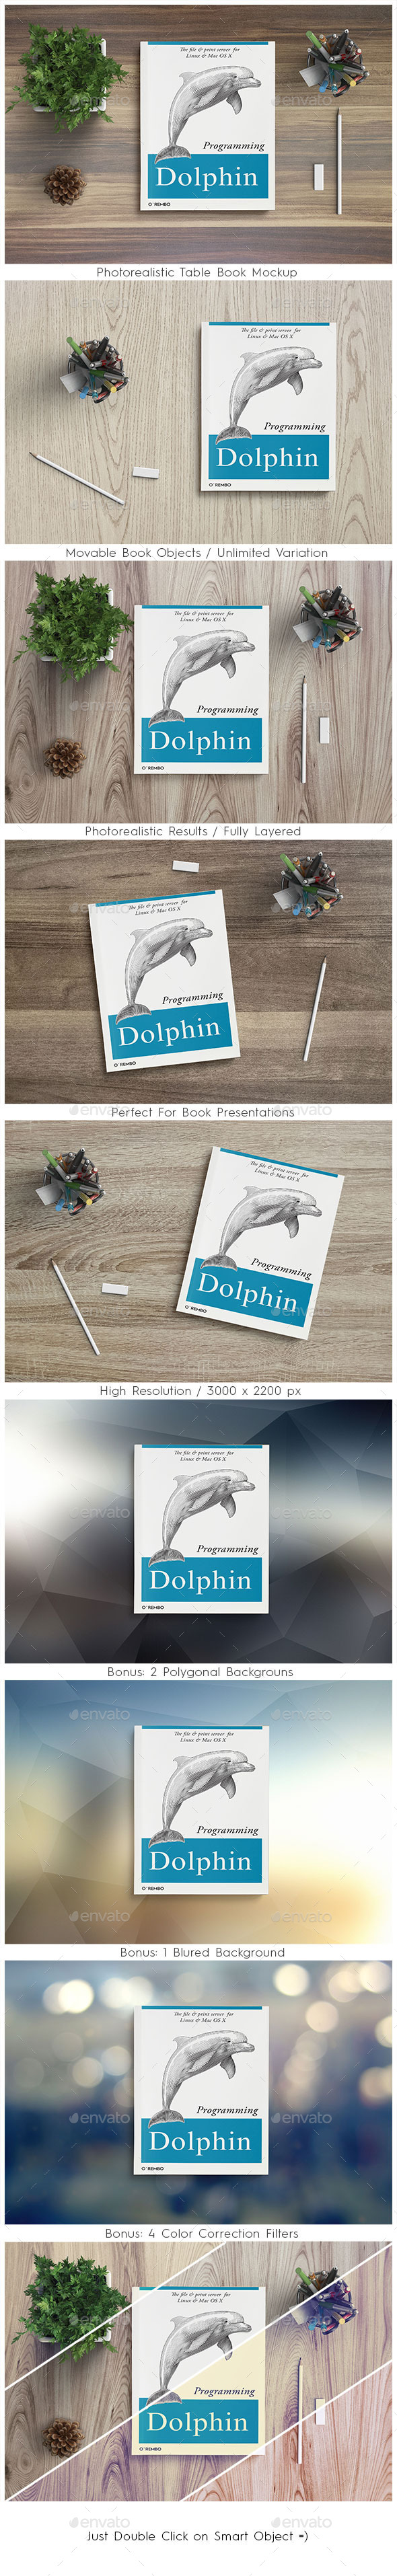 GraphicRiver Photorealistic table book mockup 11131190